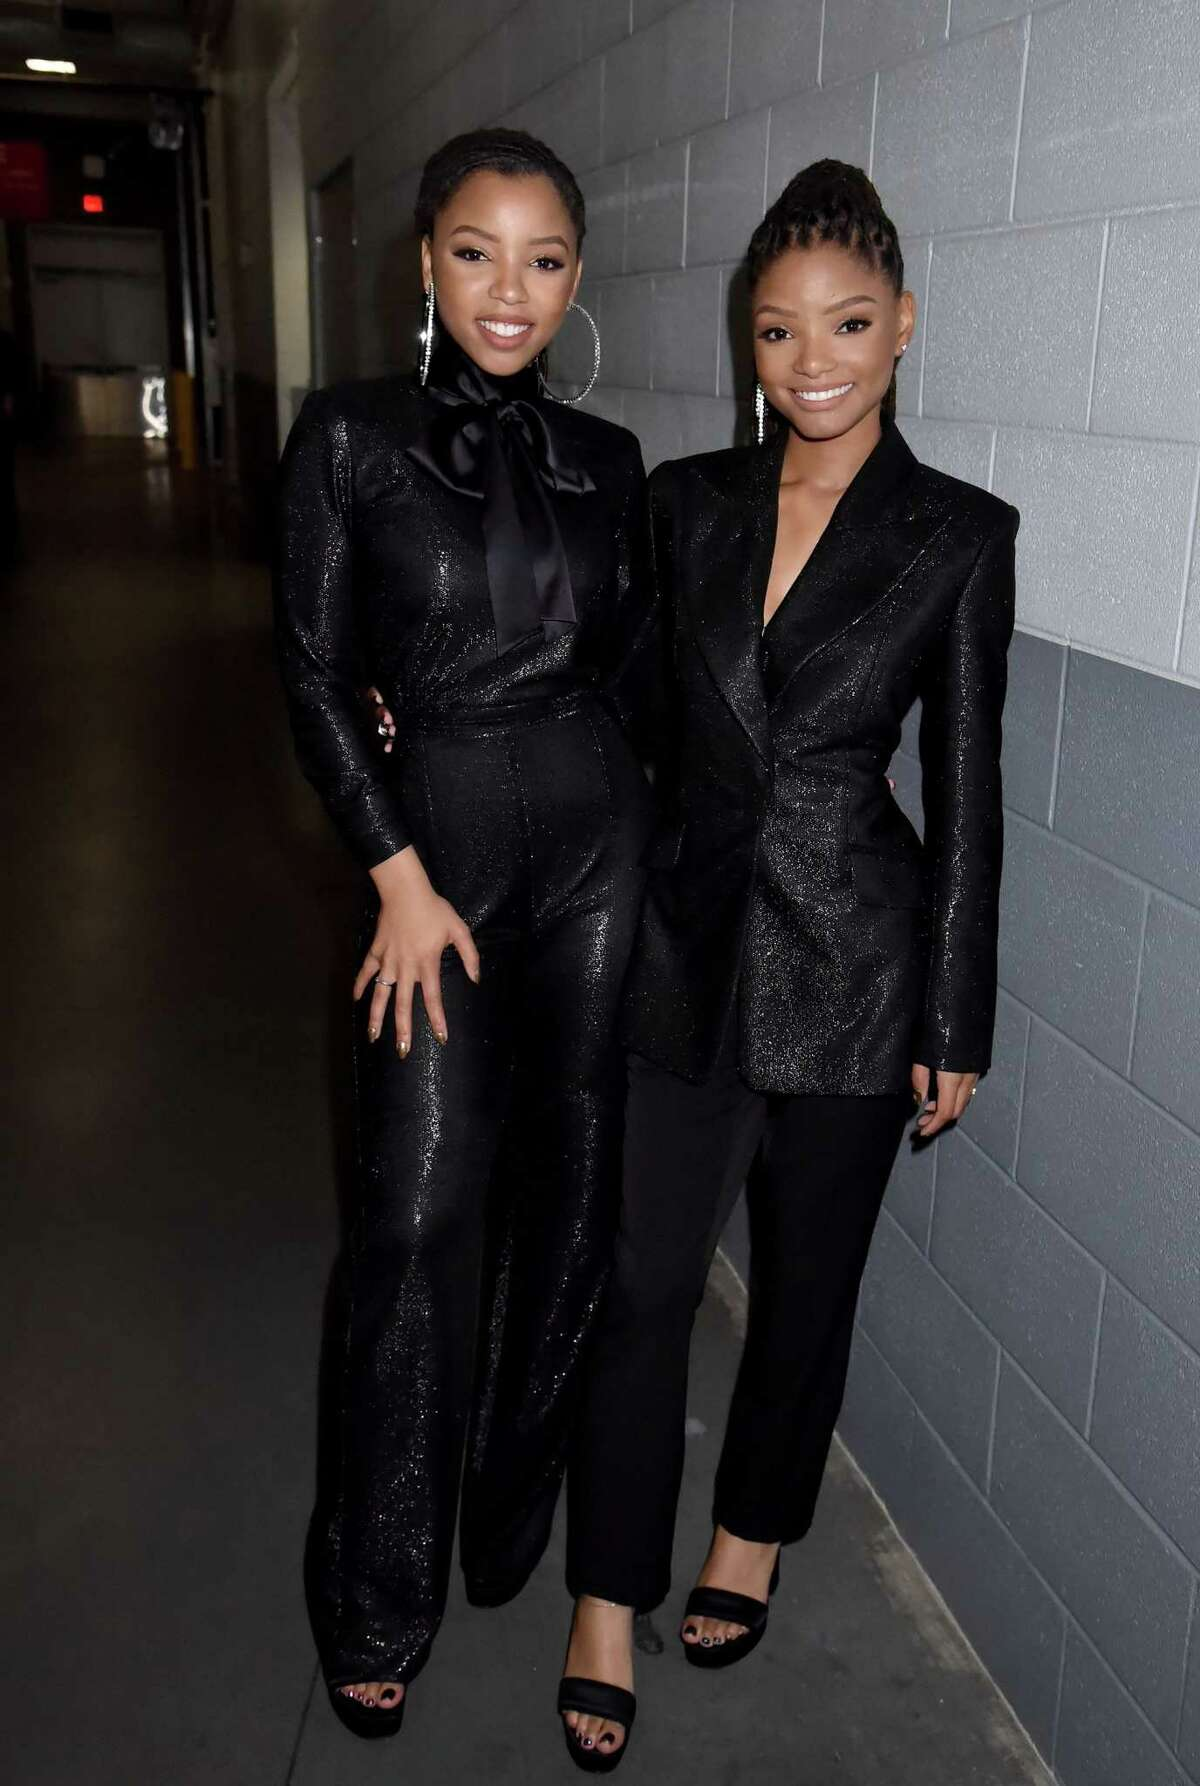 February 2019: The musicians wore all-black outfits featuring subtle shimmer, hoop earrings, and high heels to perform